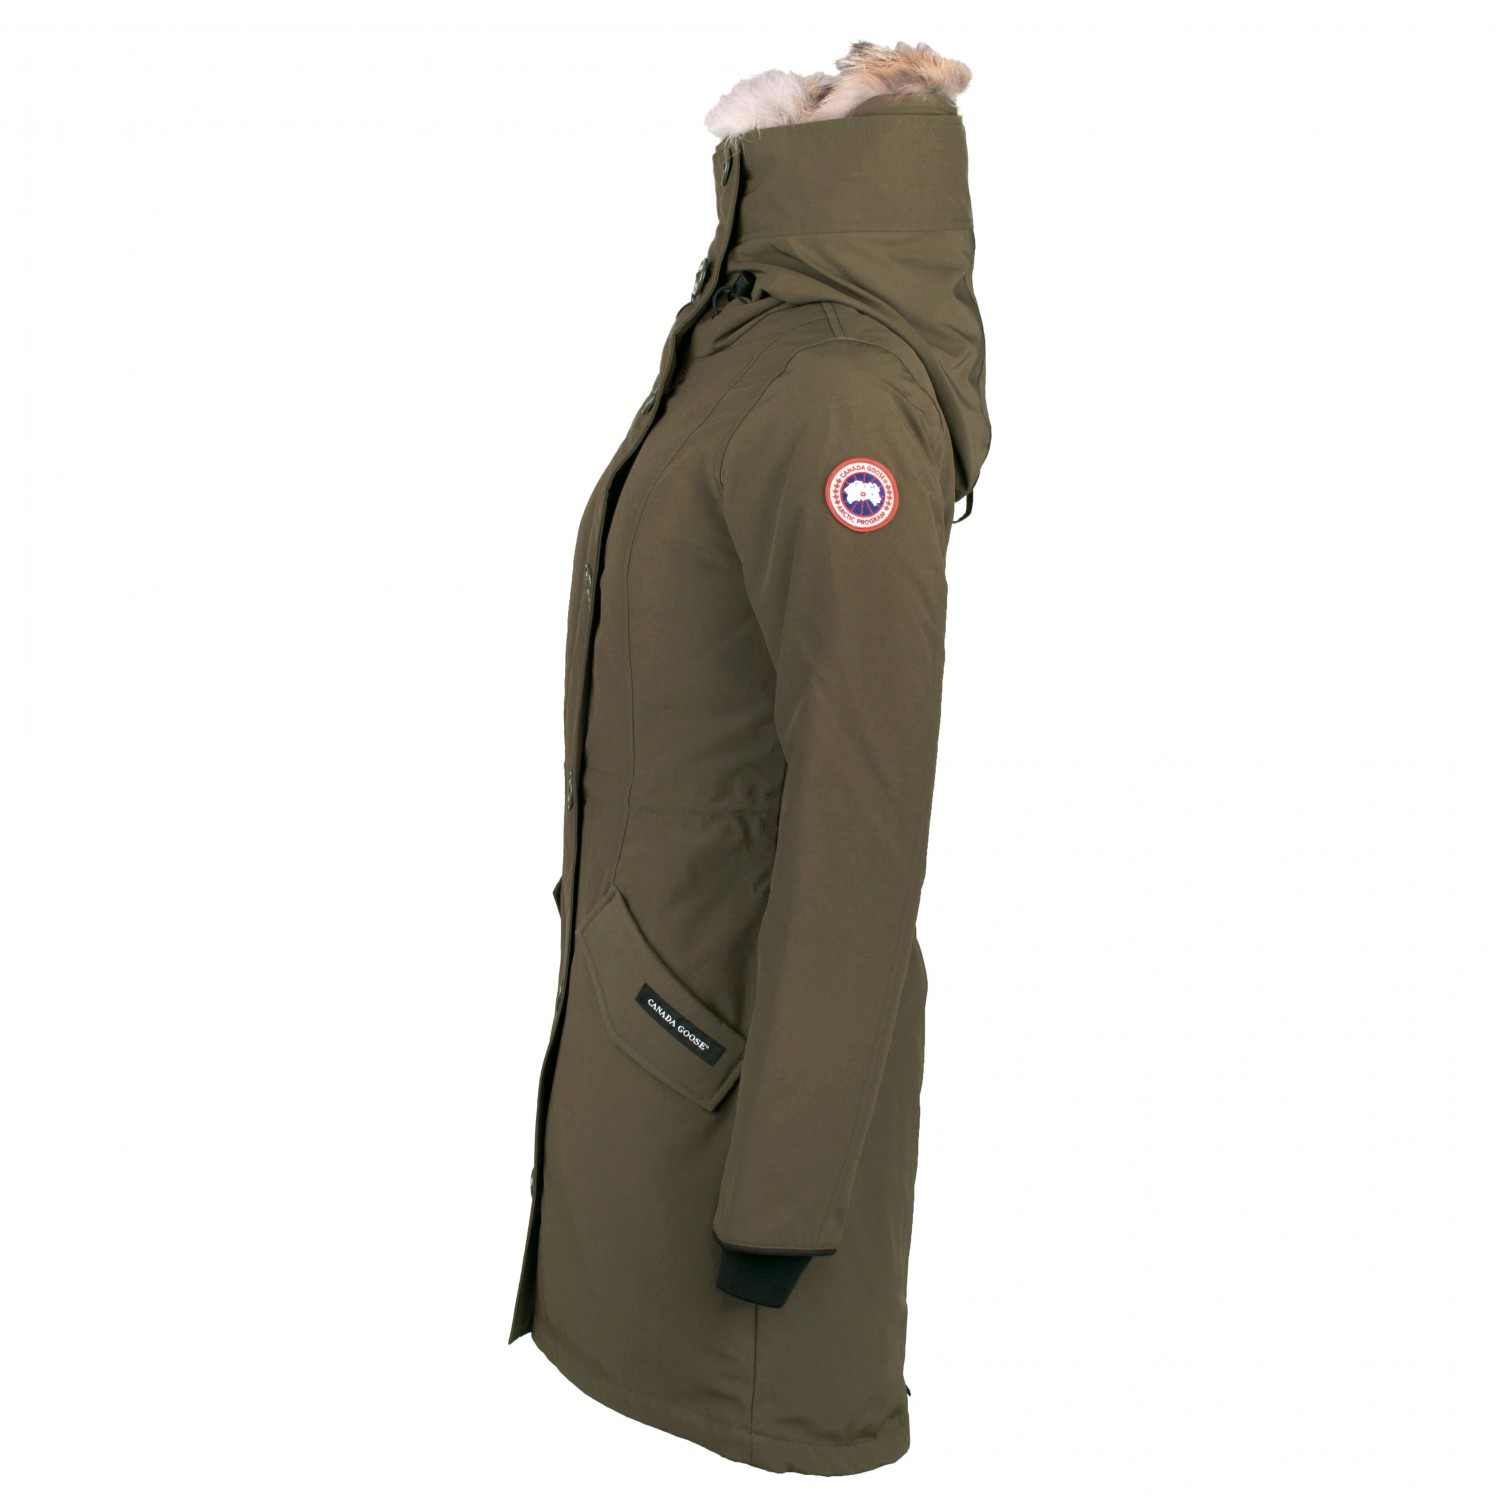 f2d20171880 buy canada goose coat womens uk d6c82 a96be